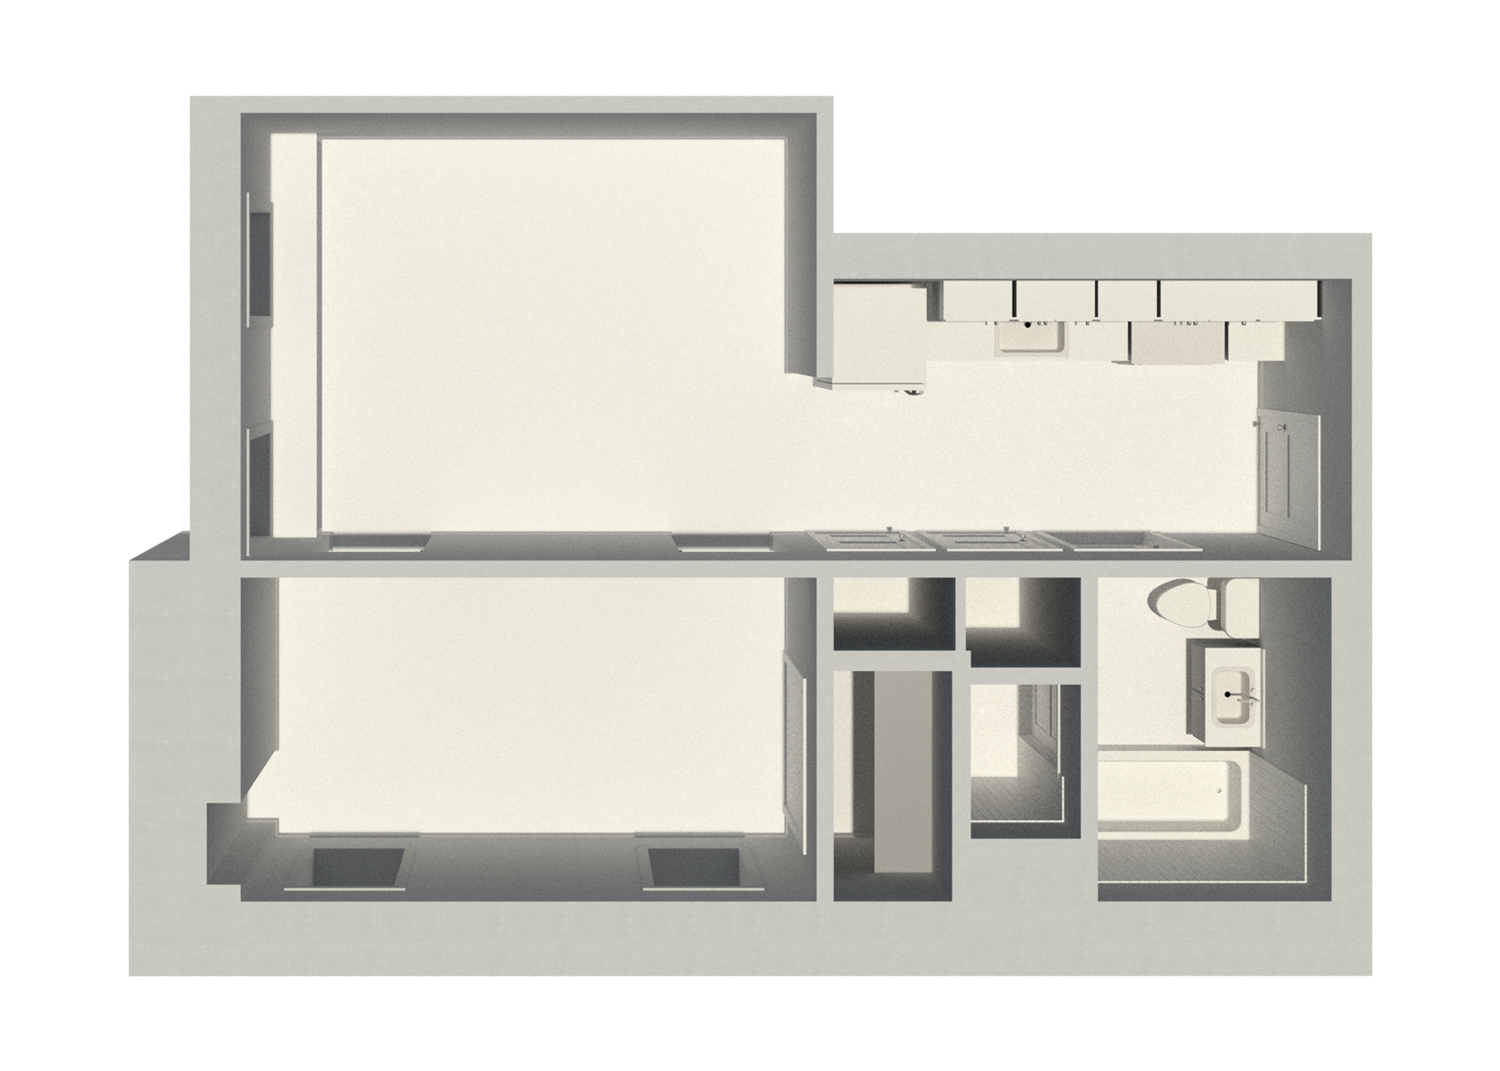 159-West-24th---6A---Plan_01.jpg